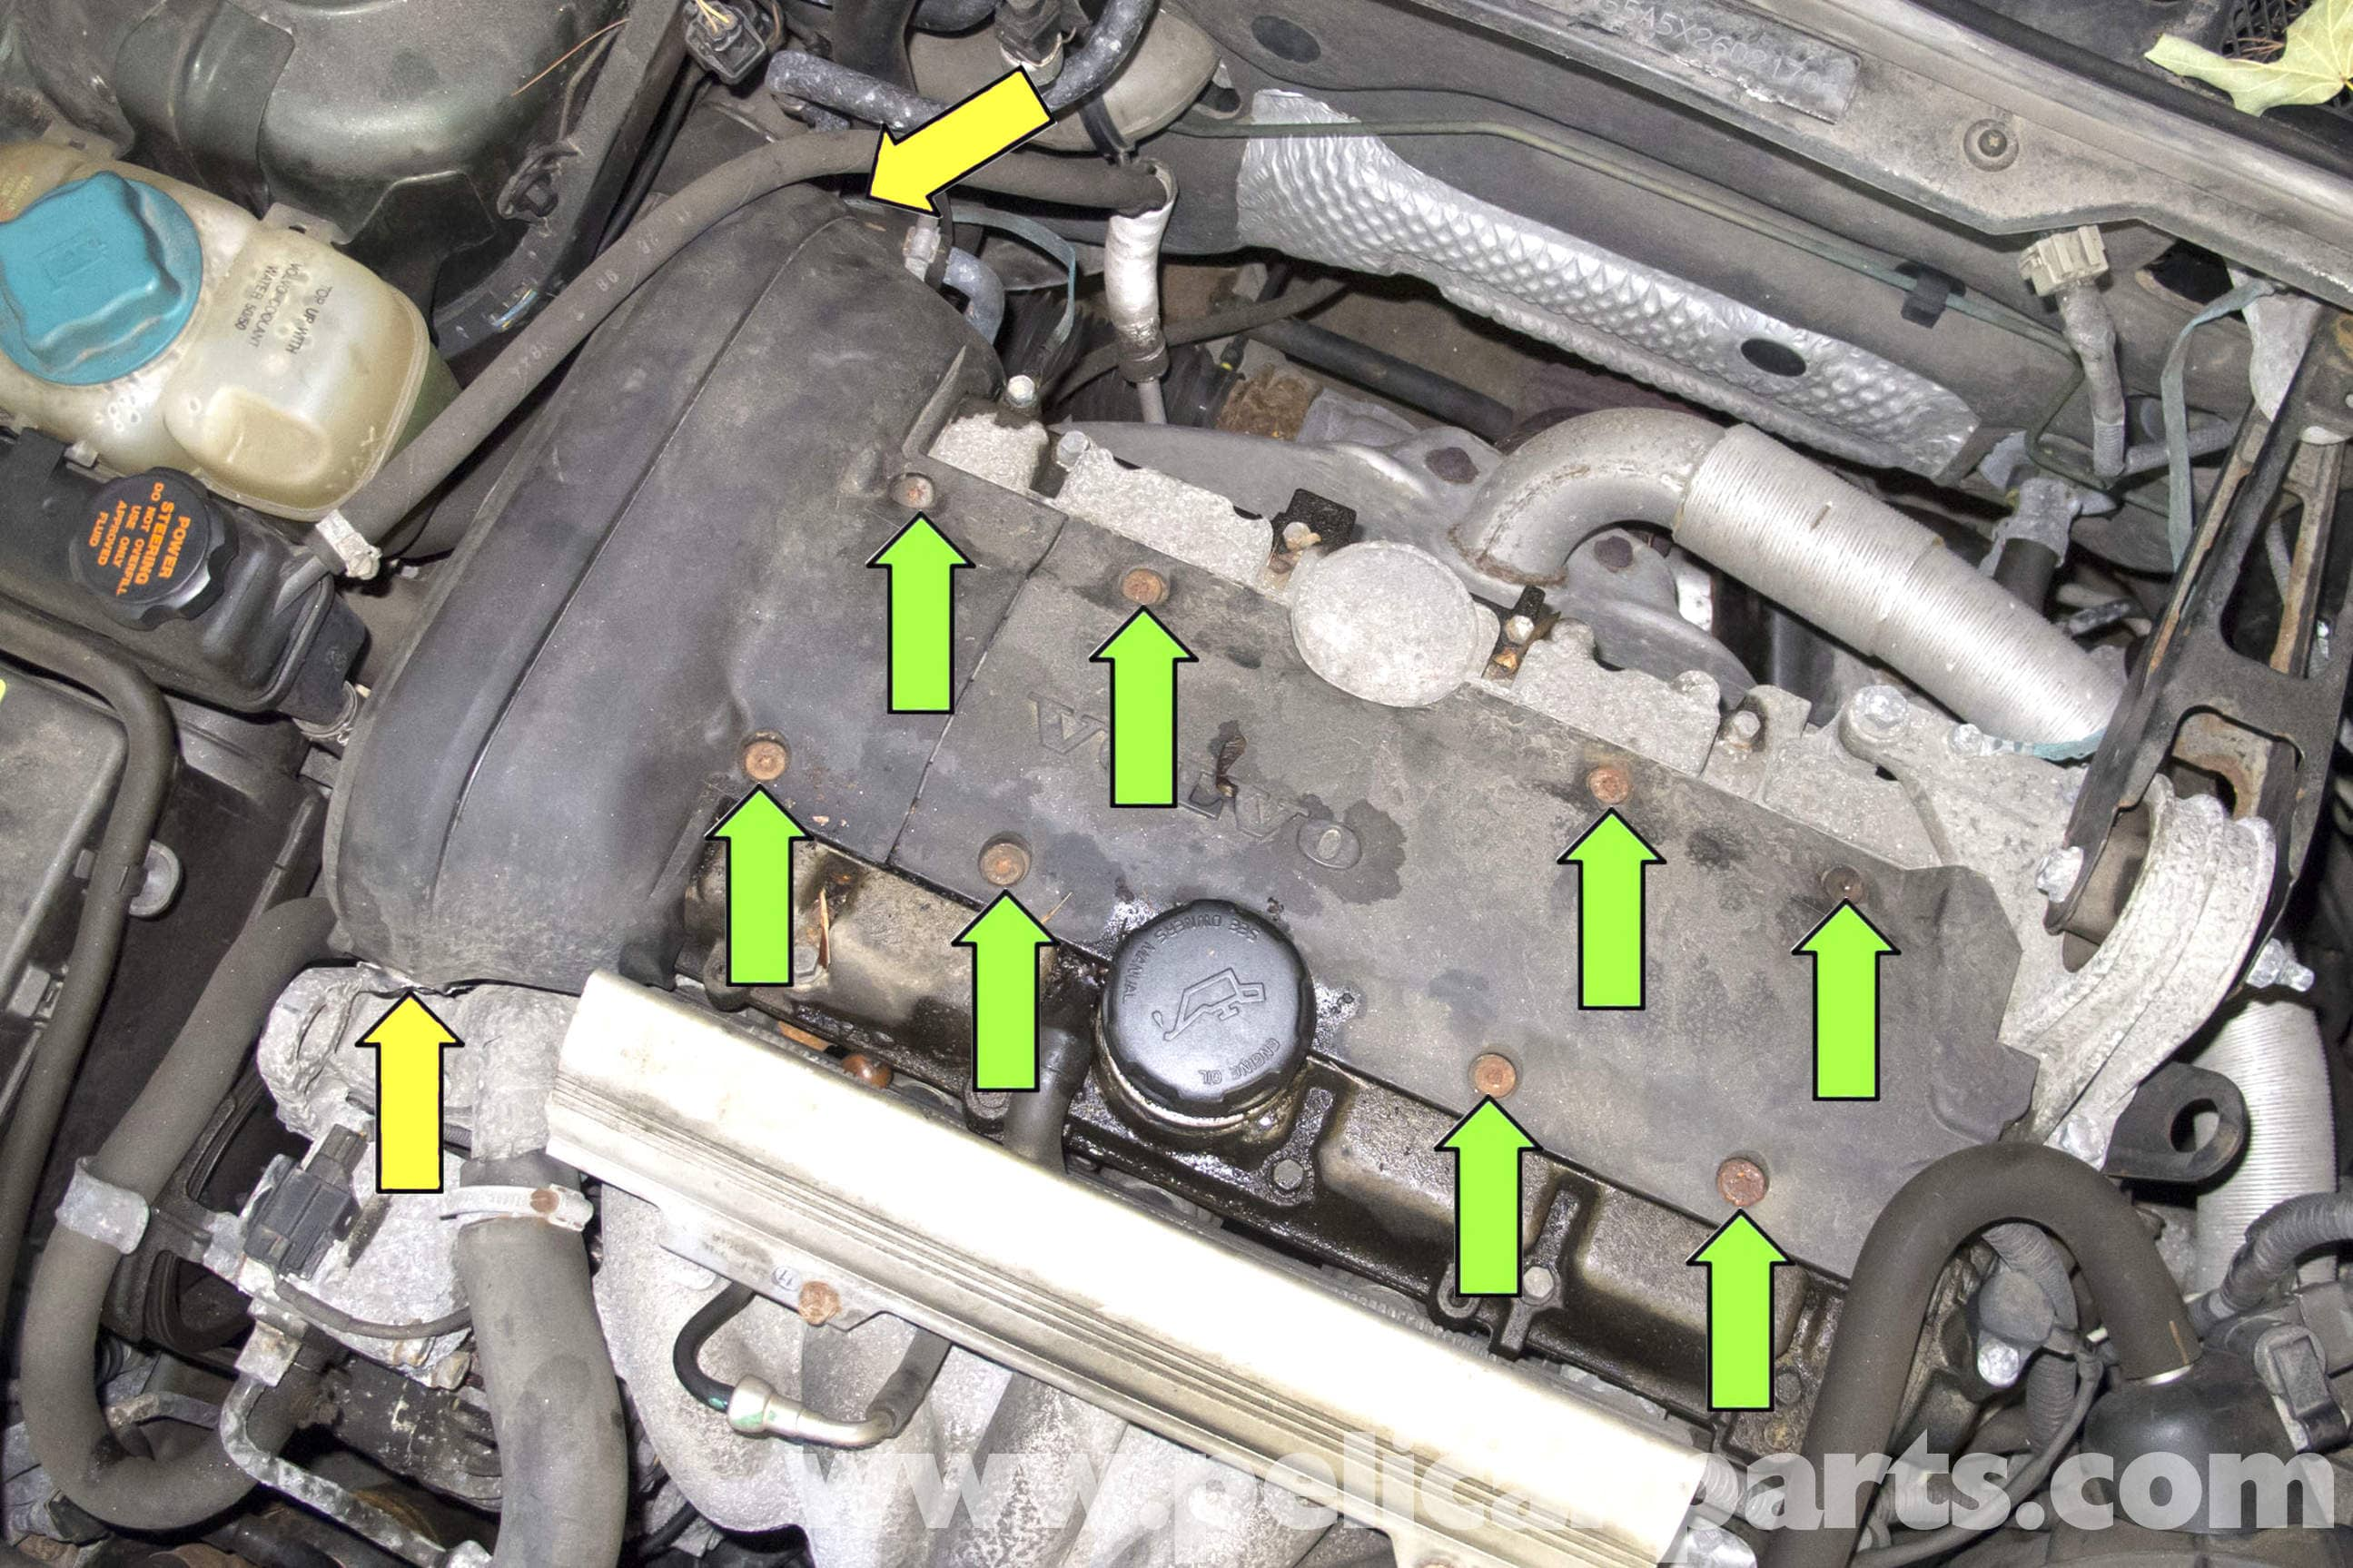 Volvo V70 Engine Diagram Spark Plug Bookmark About Wiring 2007 Xc70 Coil Replacement 1998 Pelican Parts Rh Pelicanparts Com Thermostat Racing Plugs